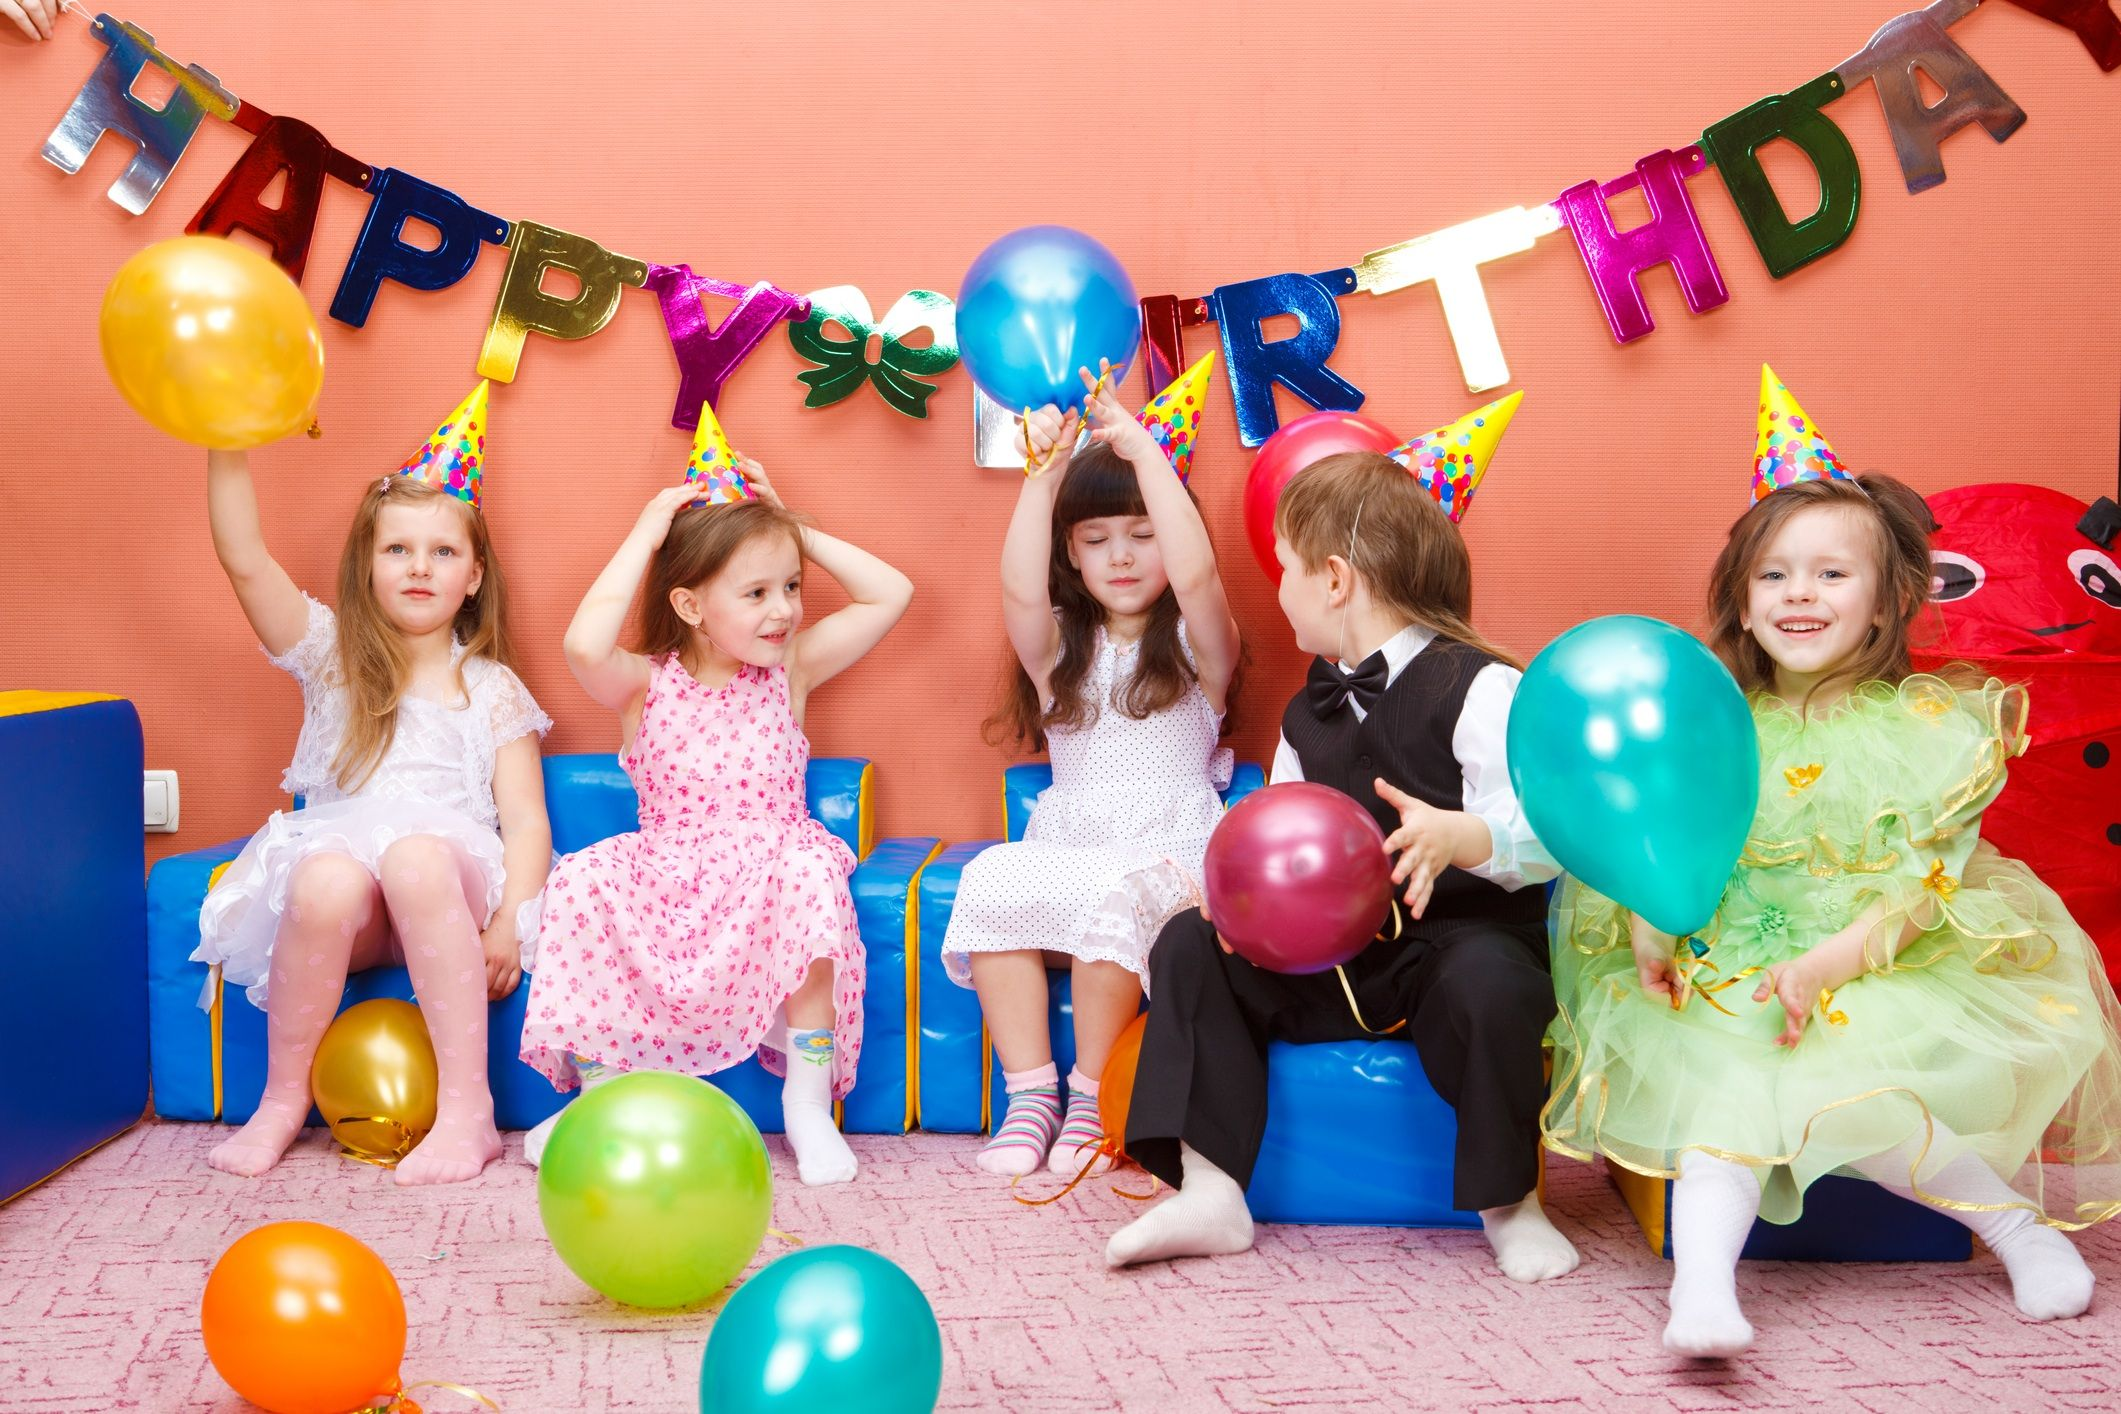 Find some of the awesome birthday party ideas for 11 and